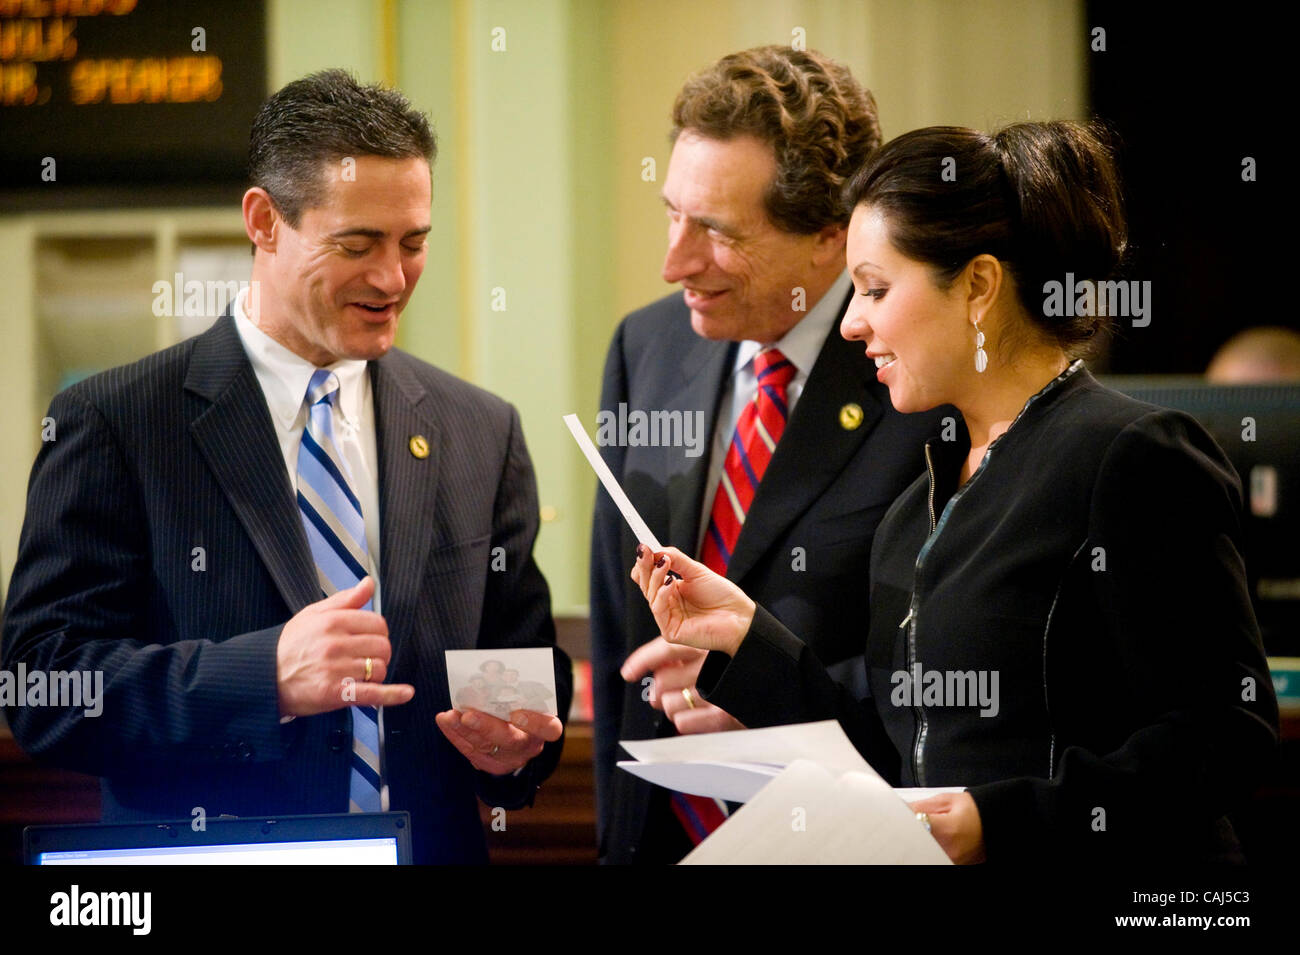 Assembly members L-R, Todd Spitzer, R-Orange, Ira Ruskin, D-Redwood City, and Nicole Parra, D-Hanford, look at Spitzer's - Stock Image